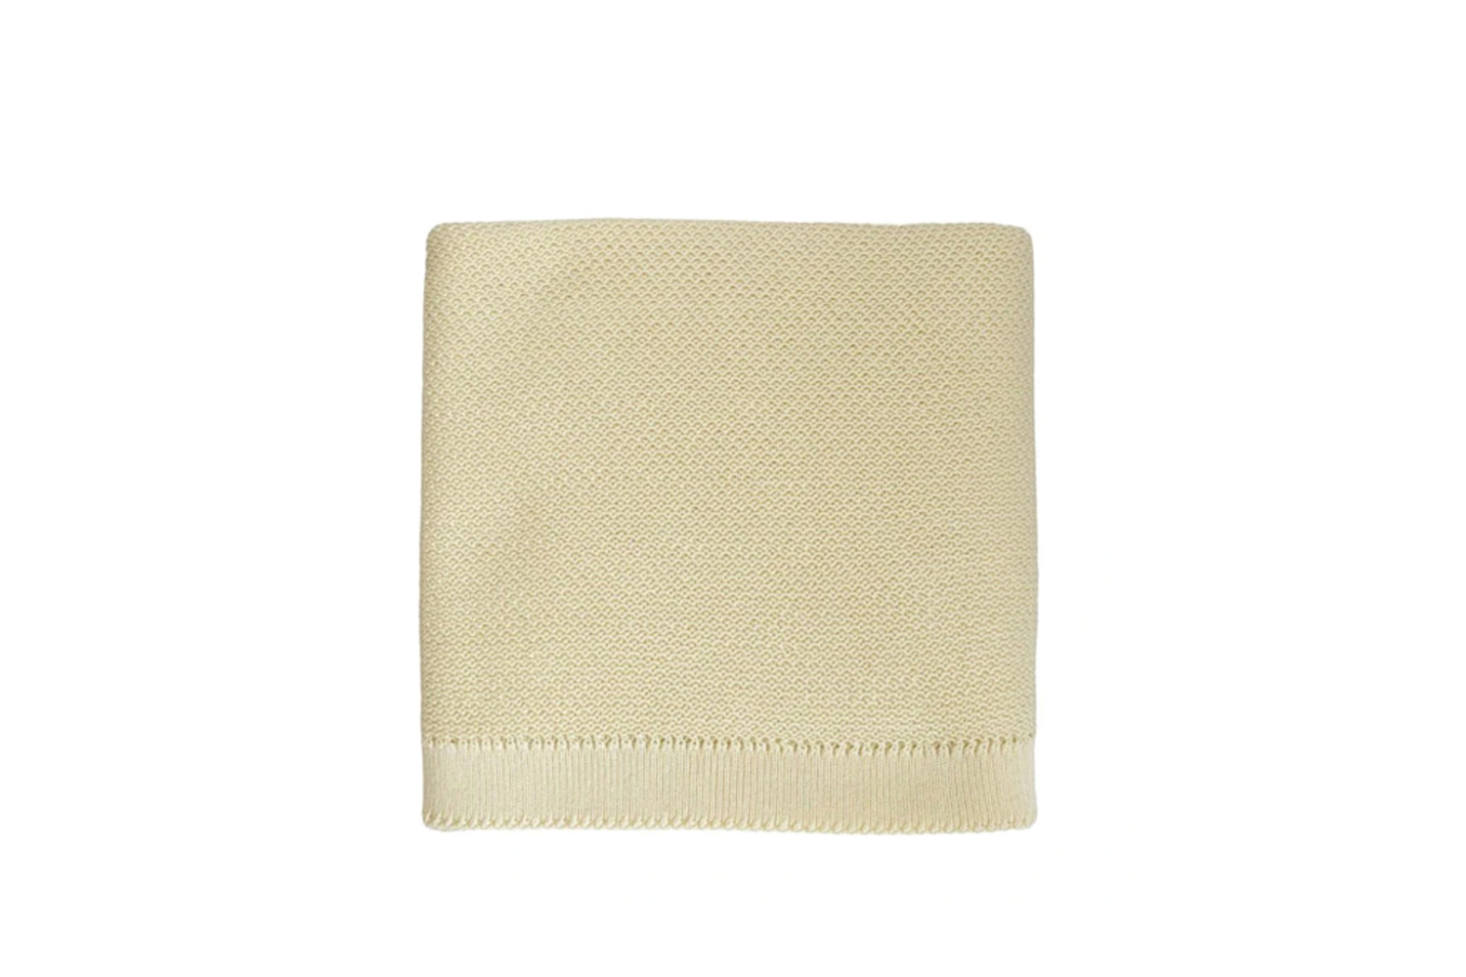 A sweet and soft handknit like the Hvid Blanket Cream is great for the newborn nursery. Knit in Belgium from lightweight cream-colored cotton, the blanket is €7